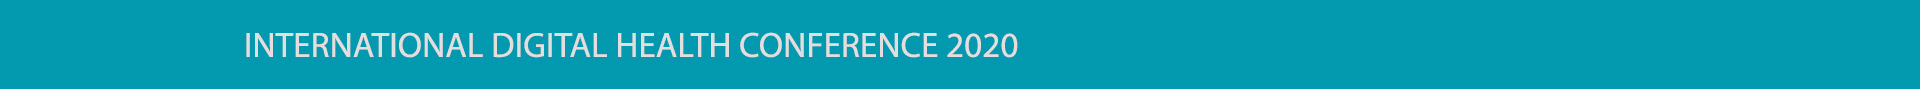 International Digital Health Conference 2020